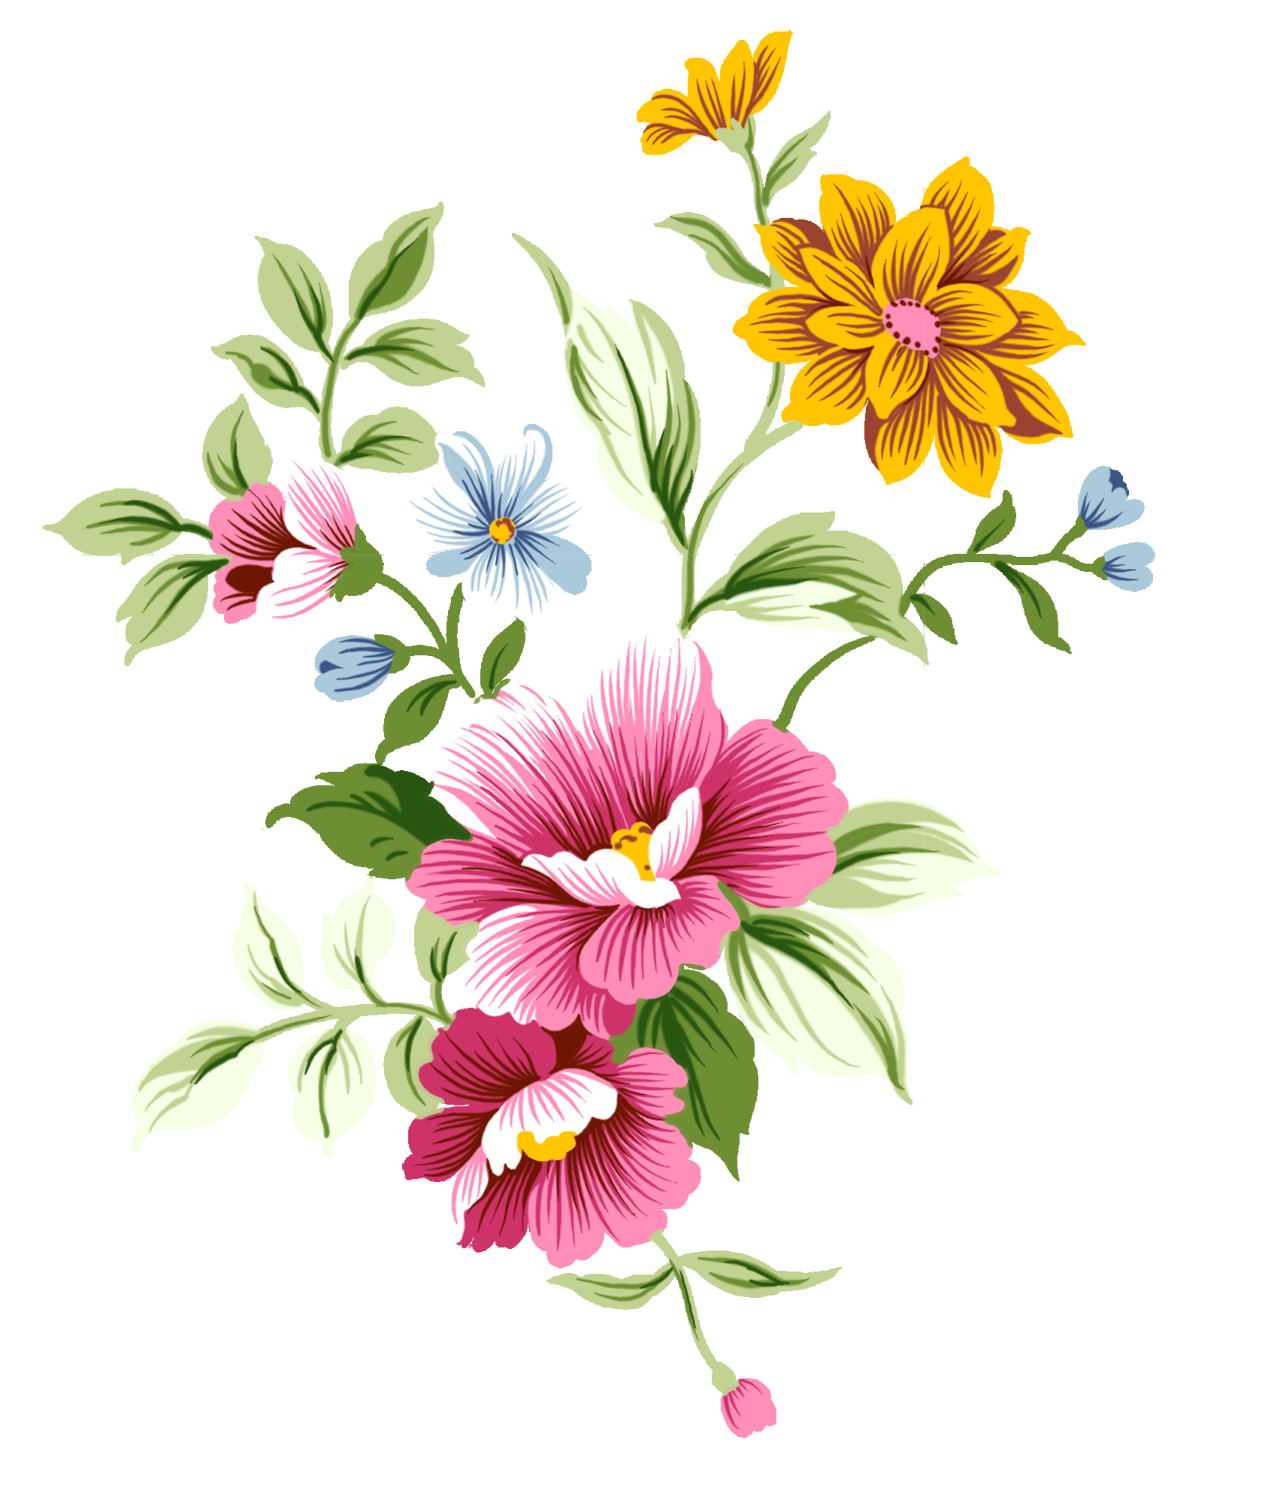 Abstract flower png. Download picture hq image